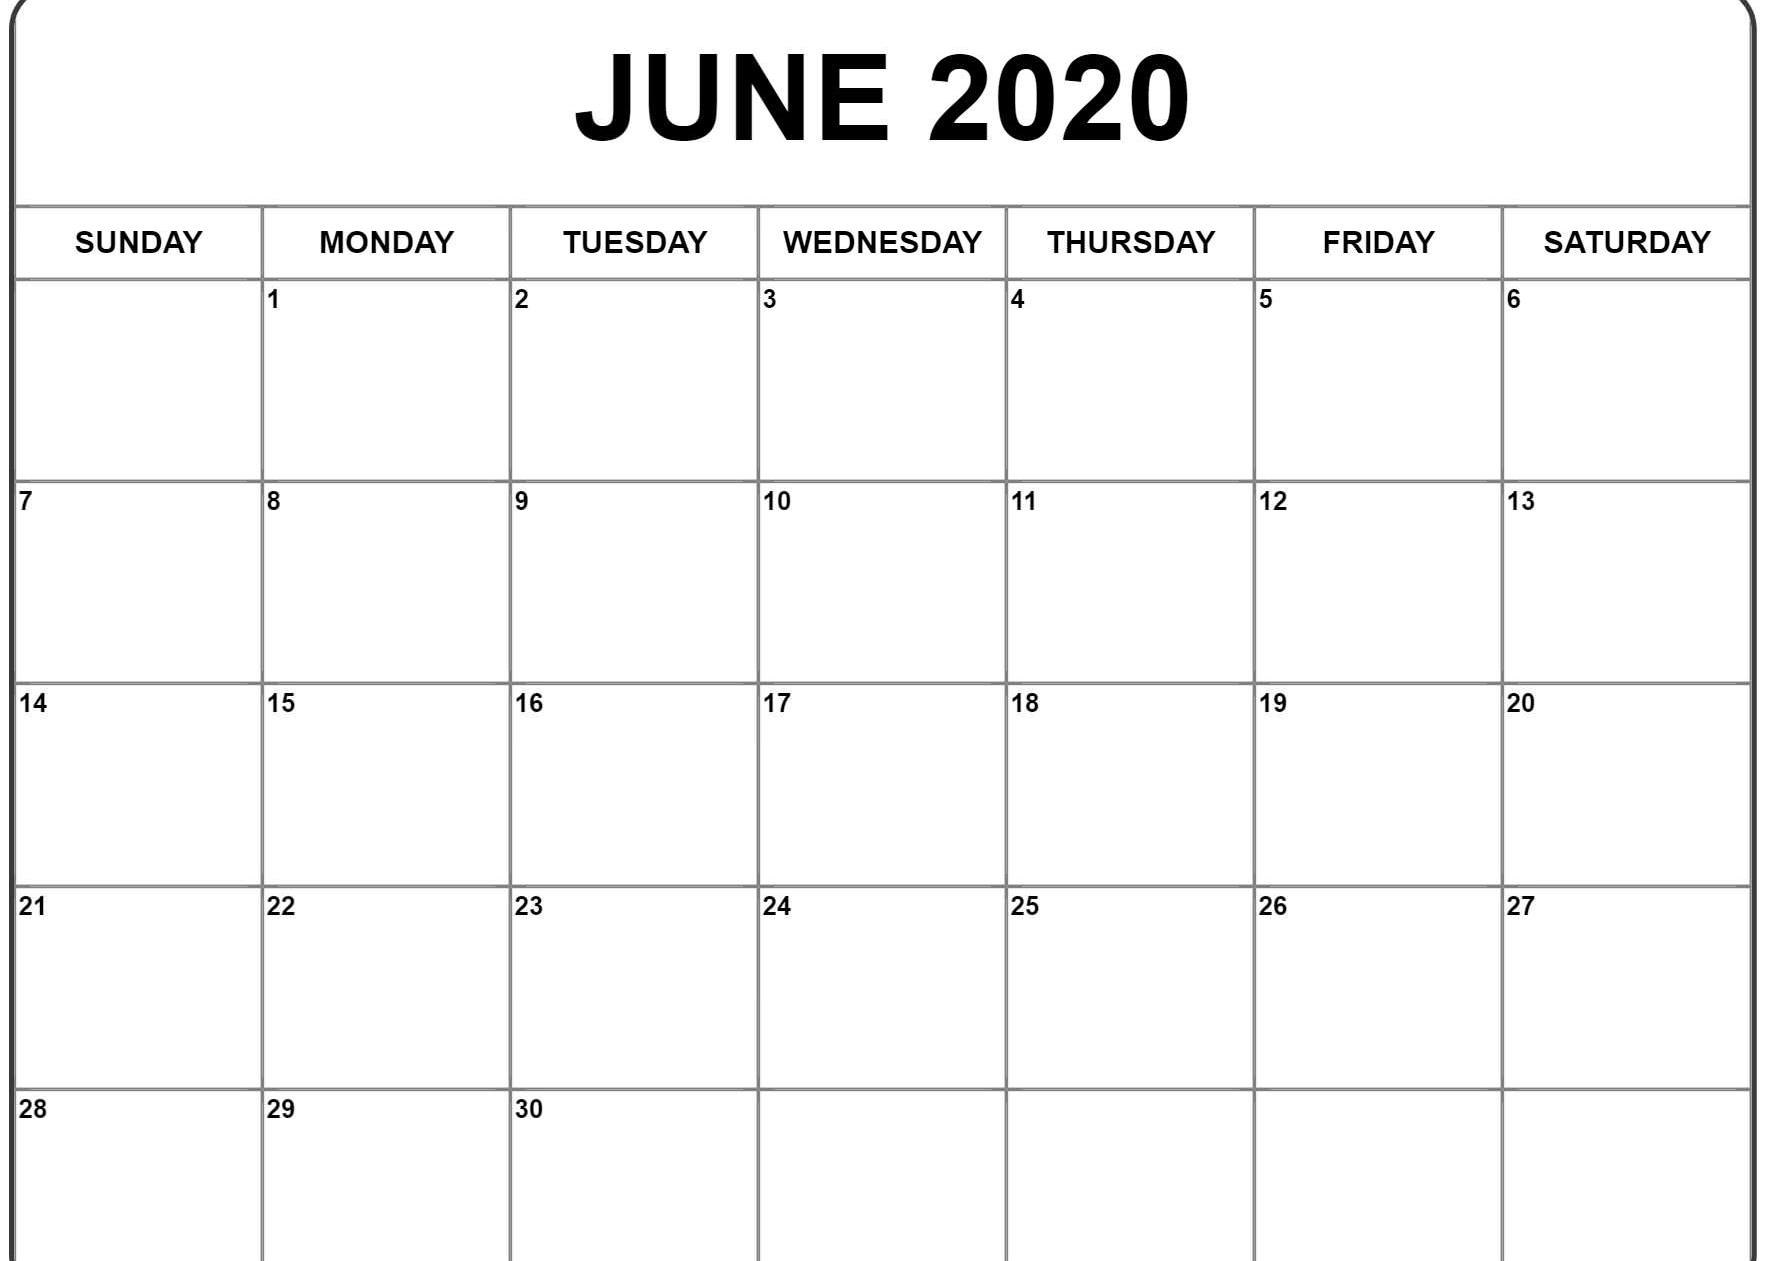 Calendario In Excel 2020.June 2020 Calendar Pdf Word Excel Template